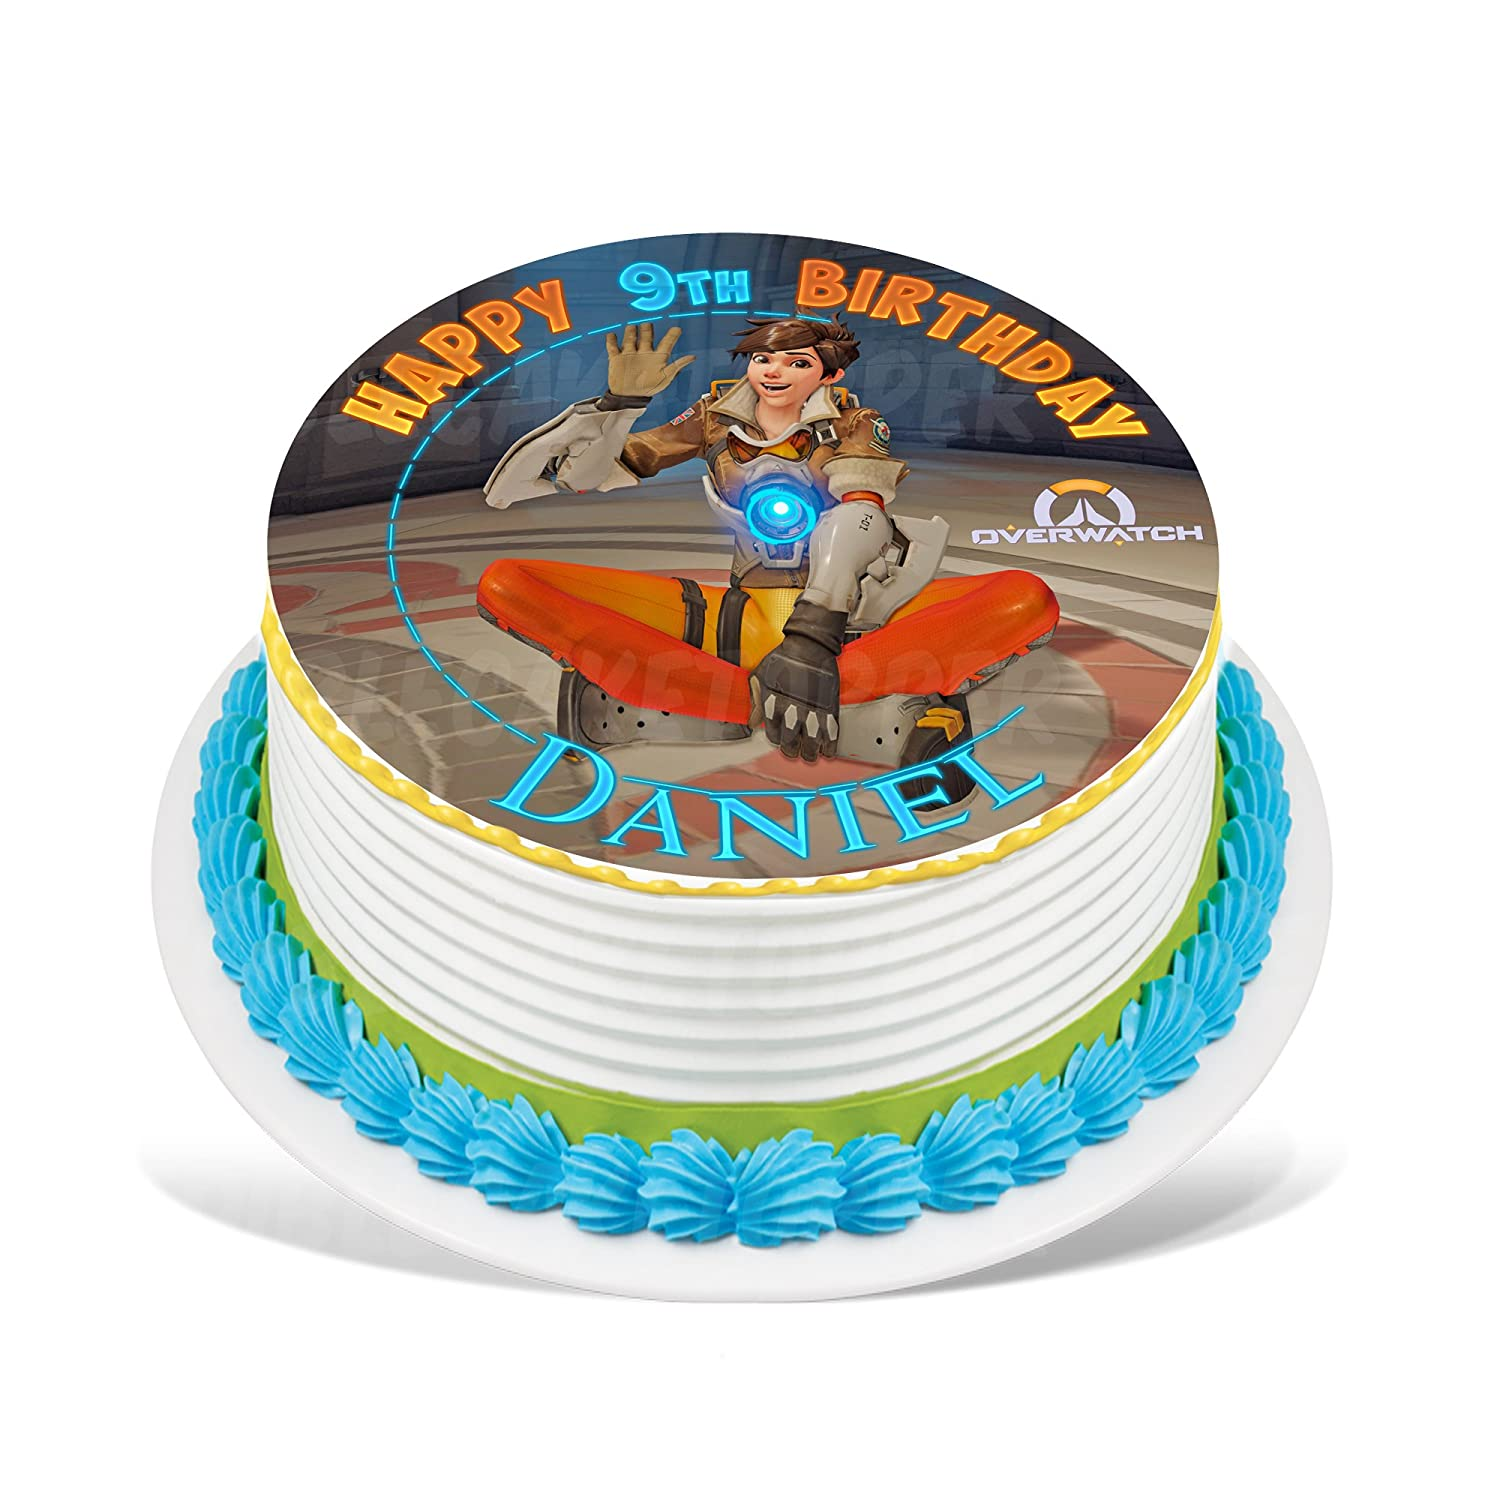 Overwatch Tracer Edible Cake Topper Personalized Birthday 8